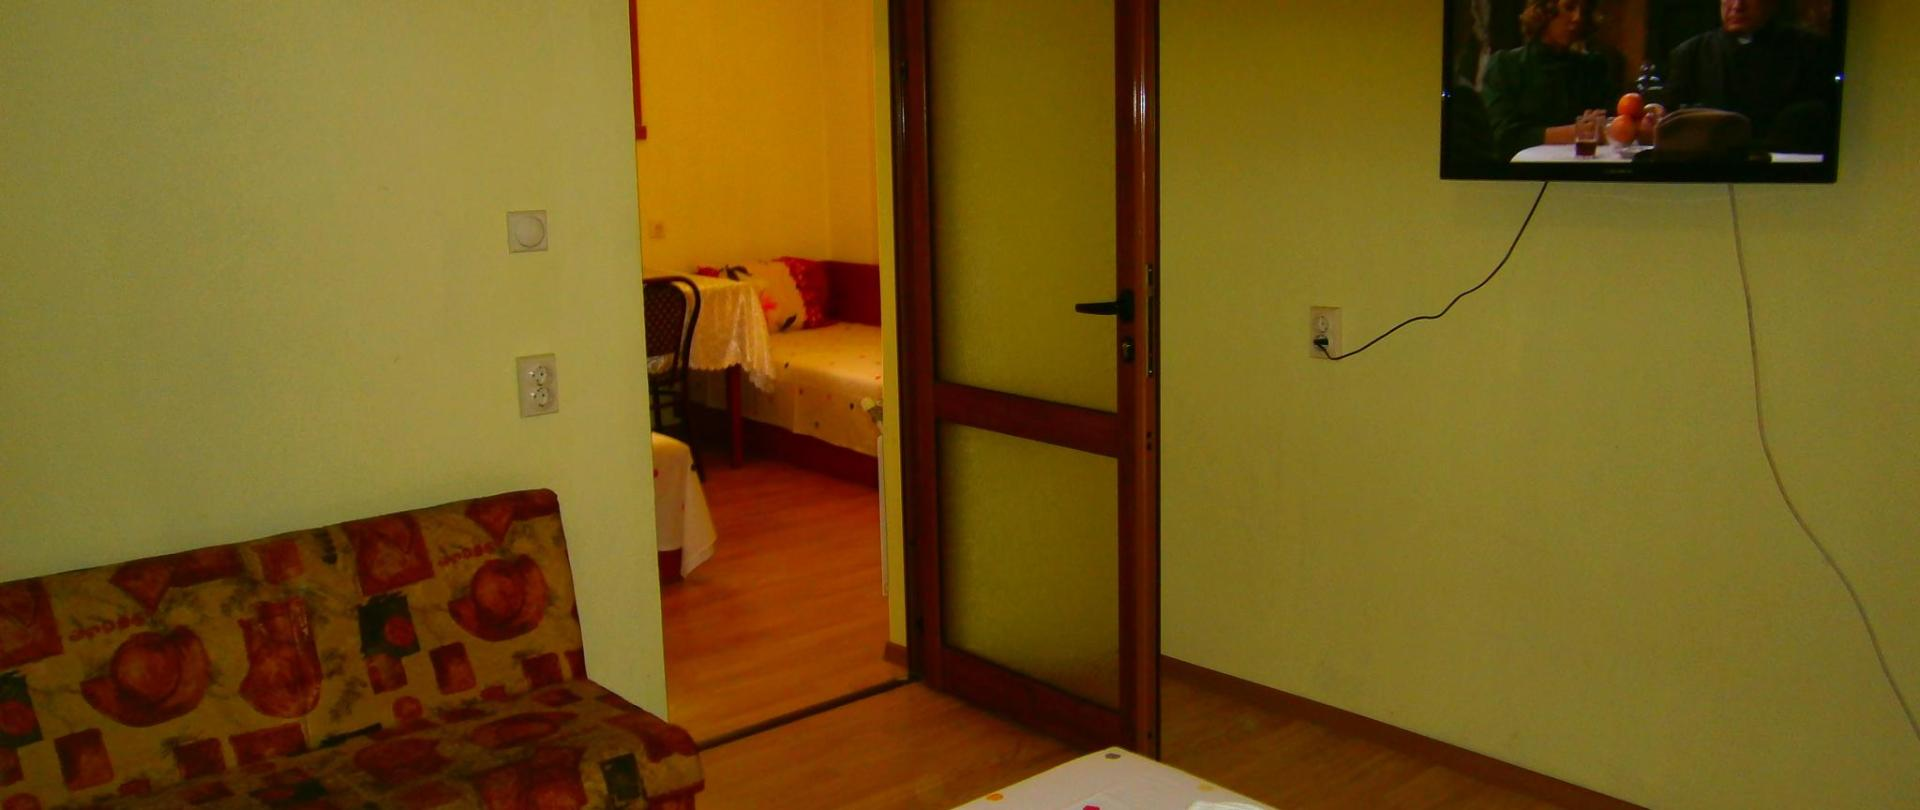 rooms in the apartment